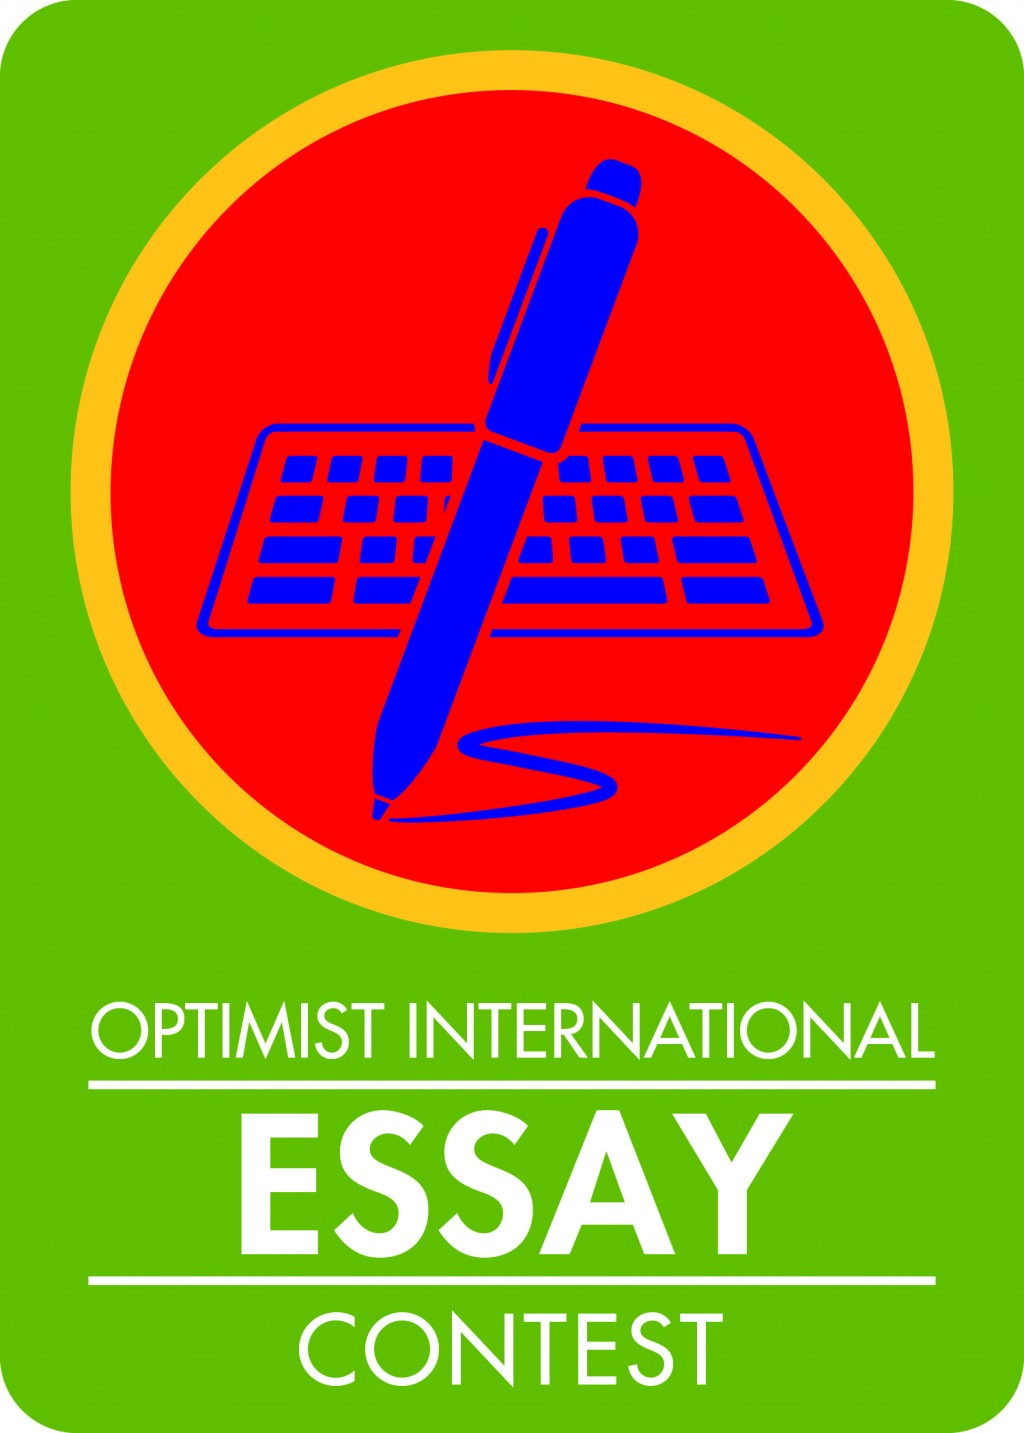 001 Essay Example High Res Optimist International Wondrous Contest Winners Due Date Oratorical Large